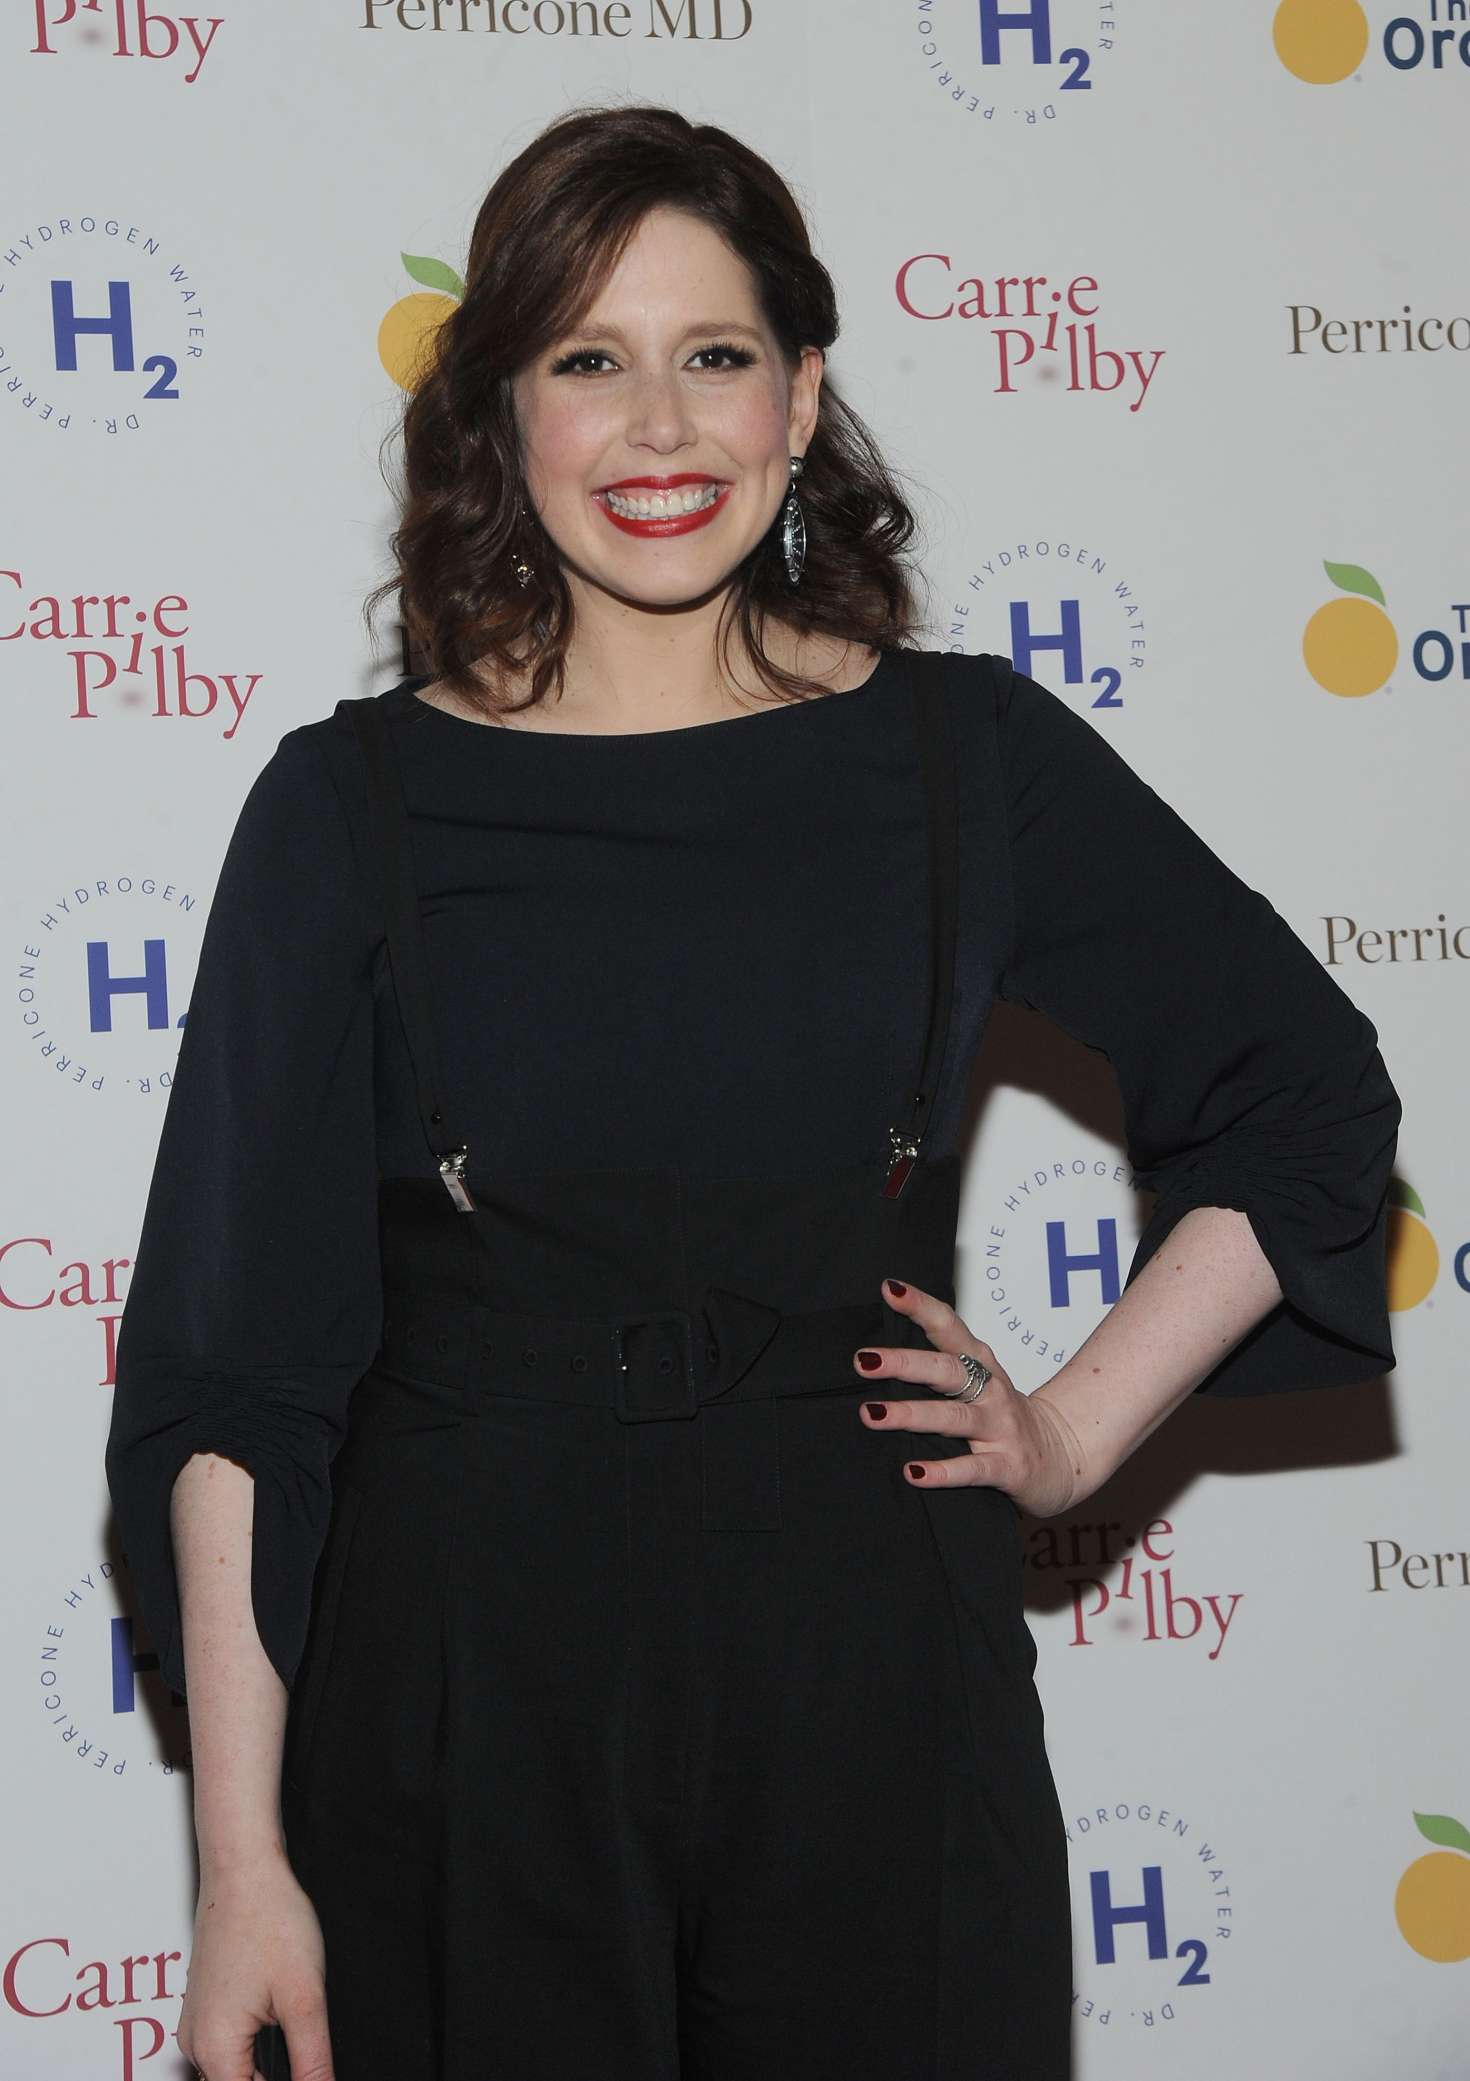 Vanessa Bayer: Carrie Pilby NY Premiere -02